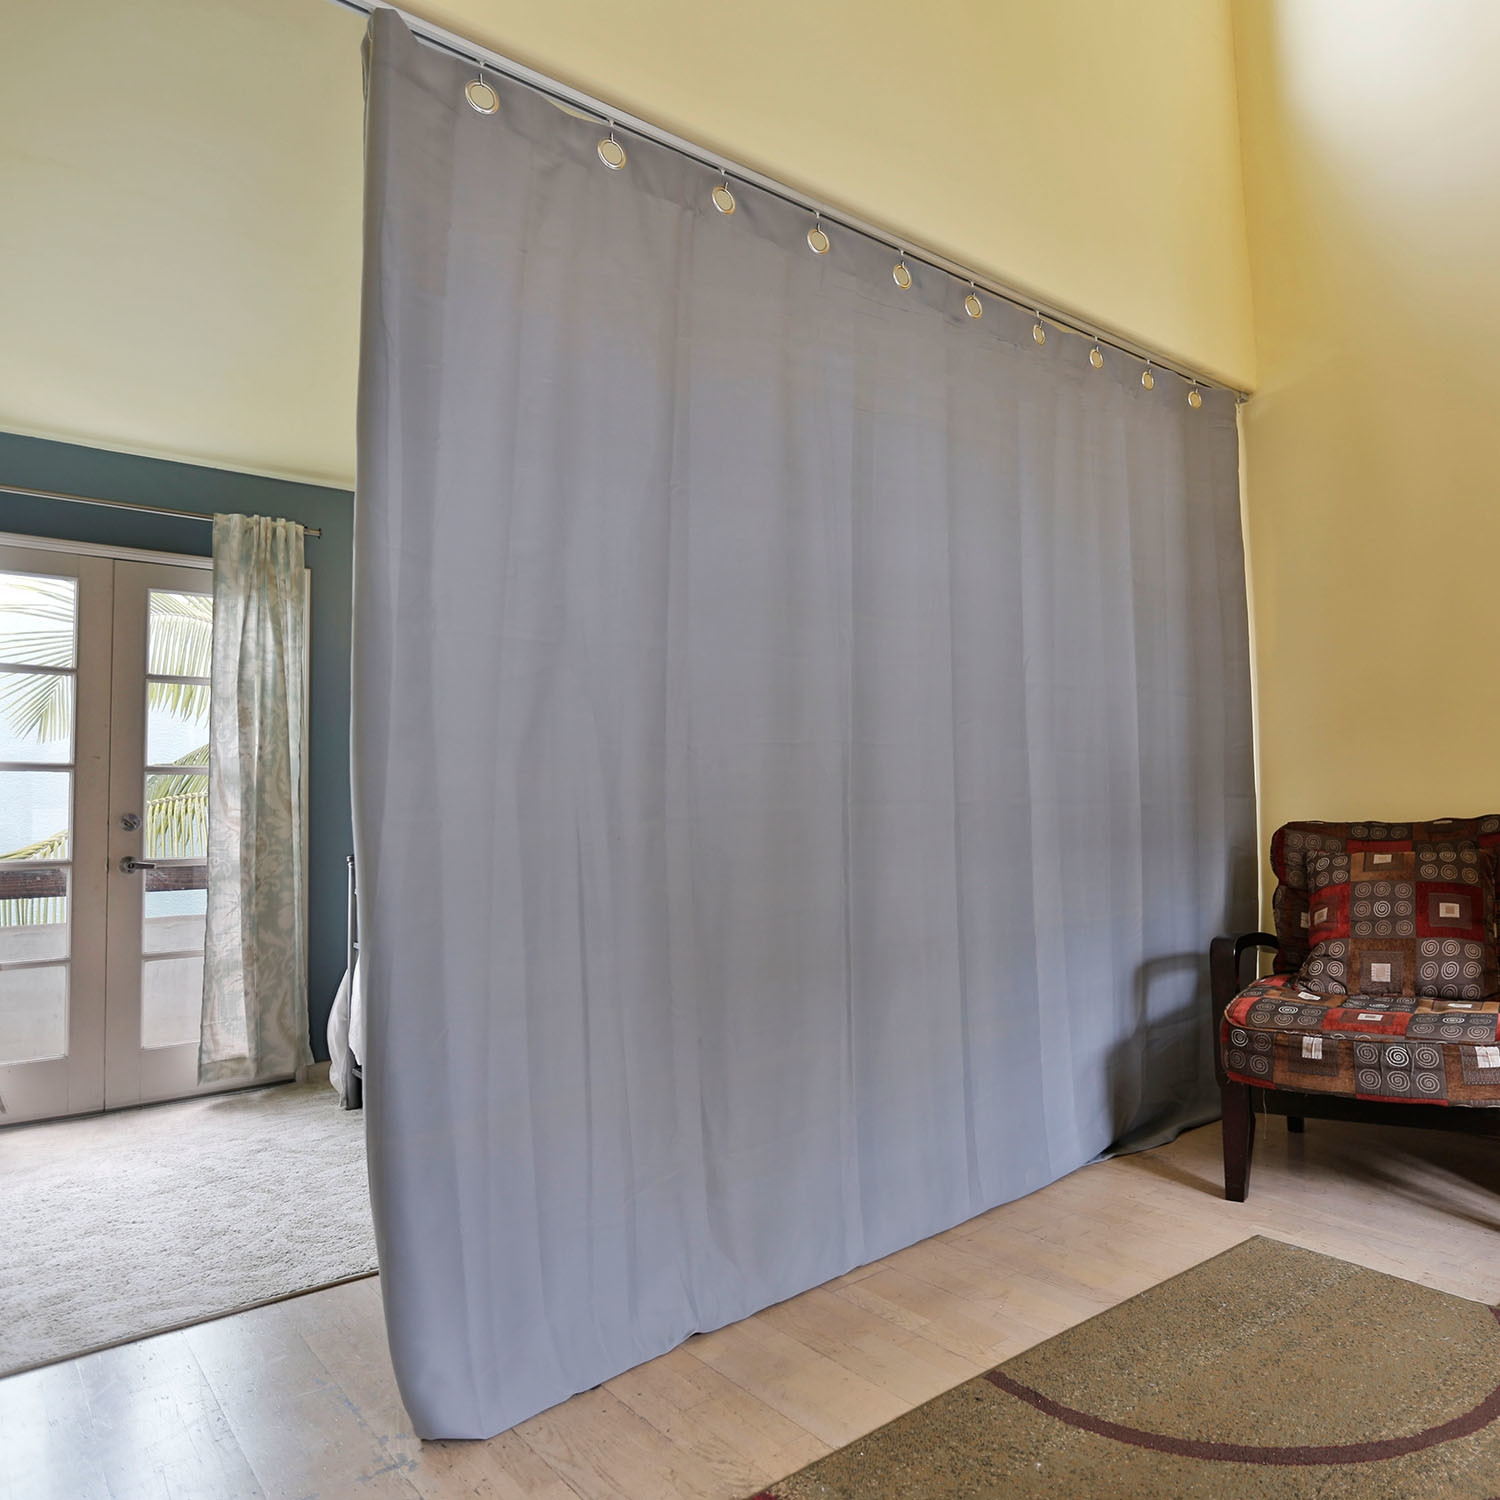 Interior Decor Curtains To Divide Room Tension Rod Room In Room Curtain Dividers (View 19 of 25)